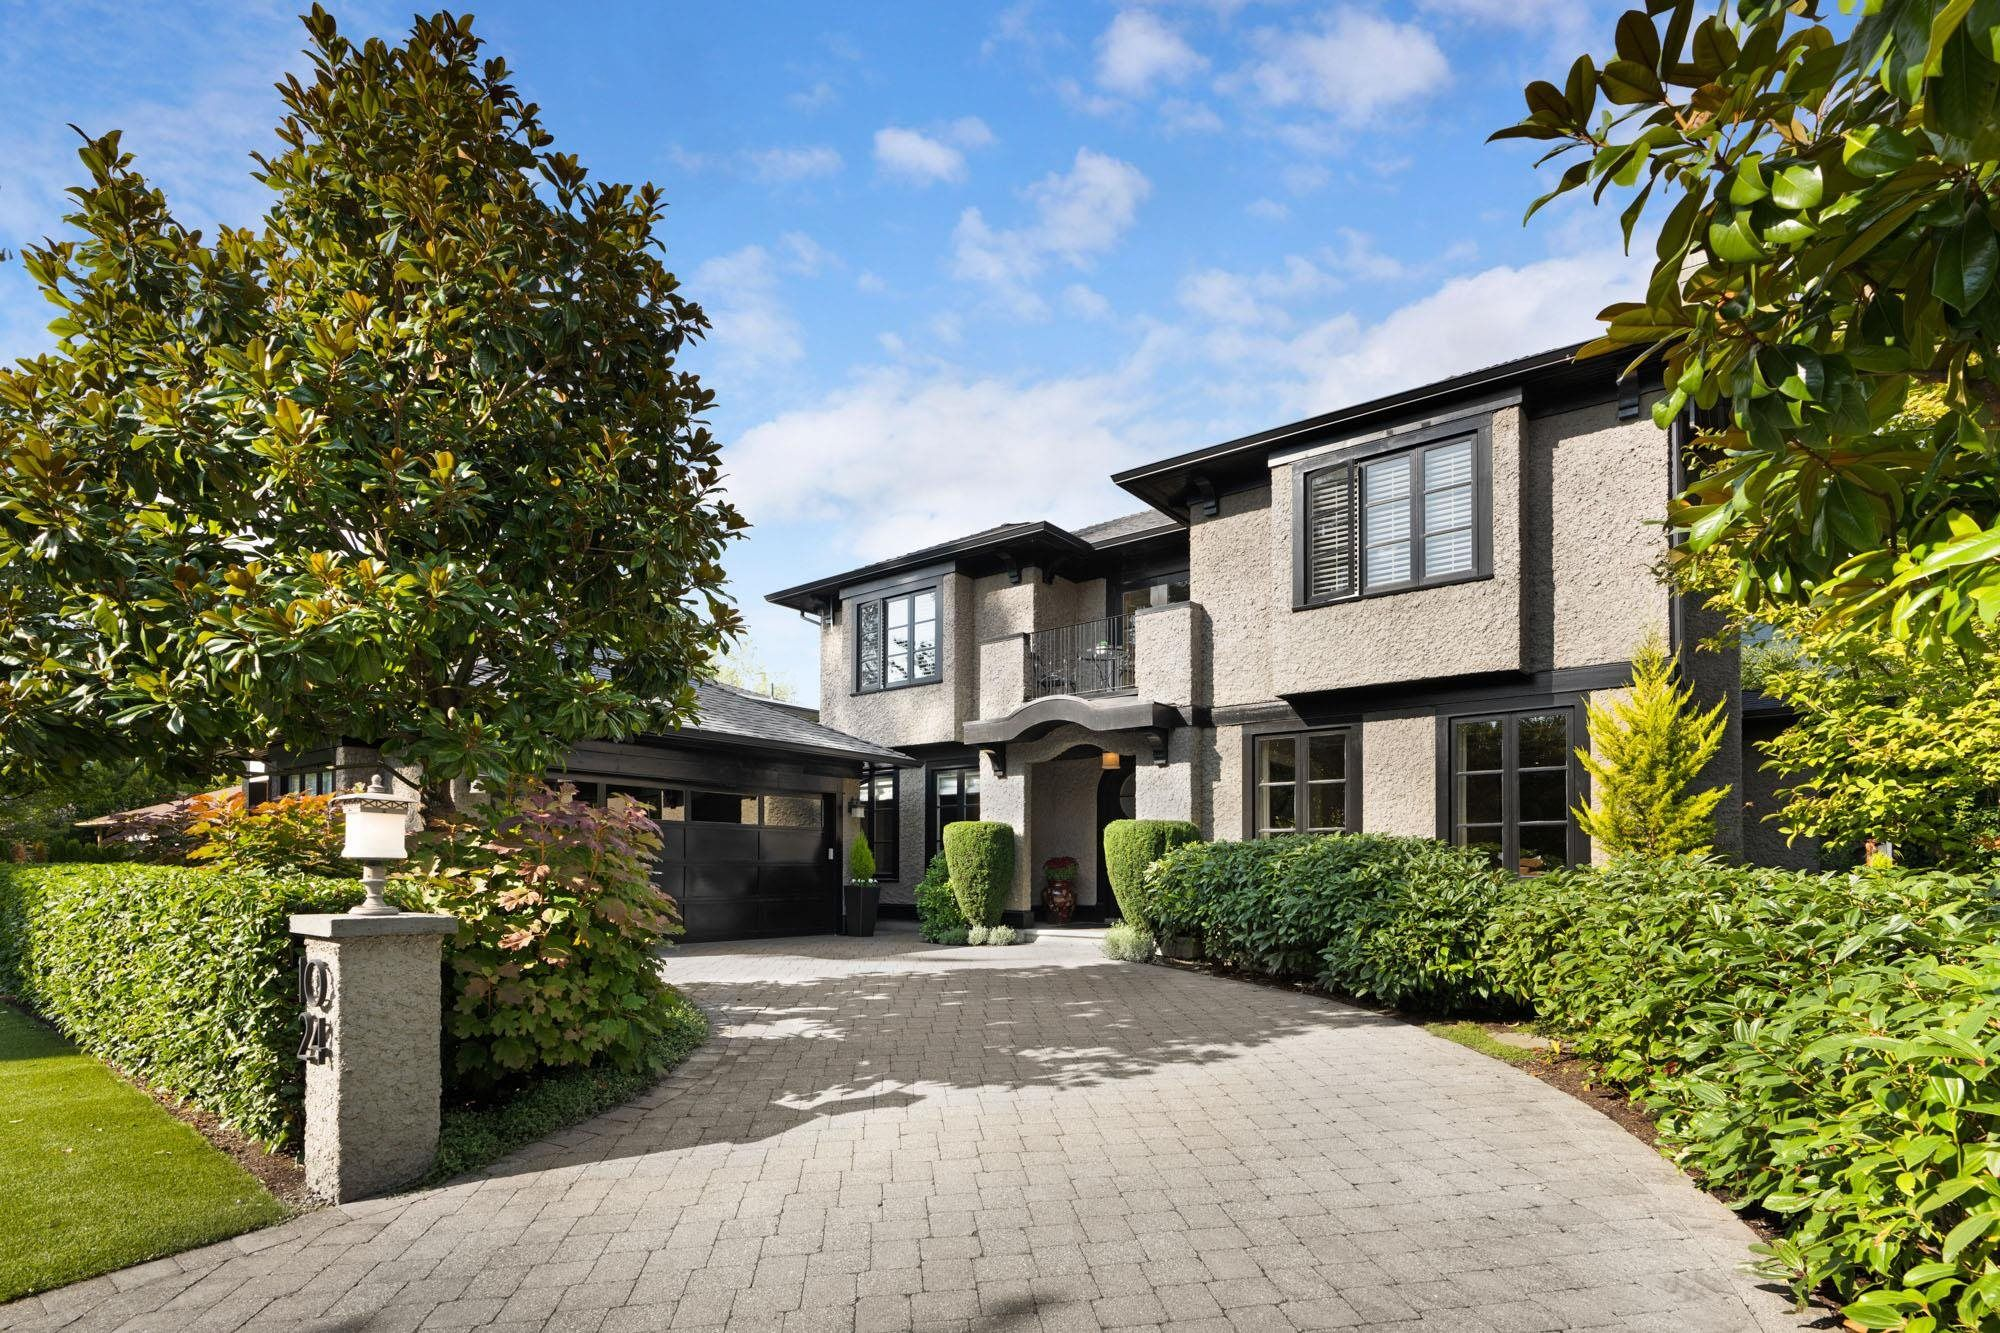 """Main Photo: 1024 BELMONT Avenue in North Vancouver: Edgemont House for sale in """"EDGEMONT VILLAGE"""" : MLS®# R2616613"""